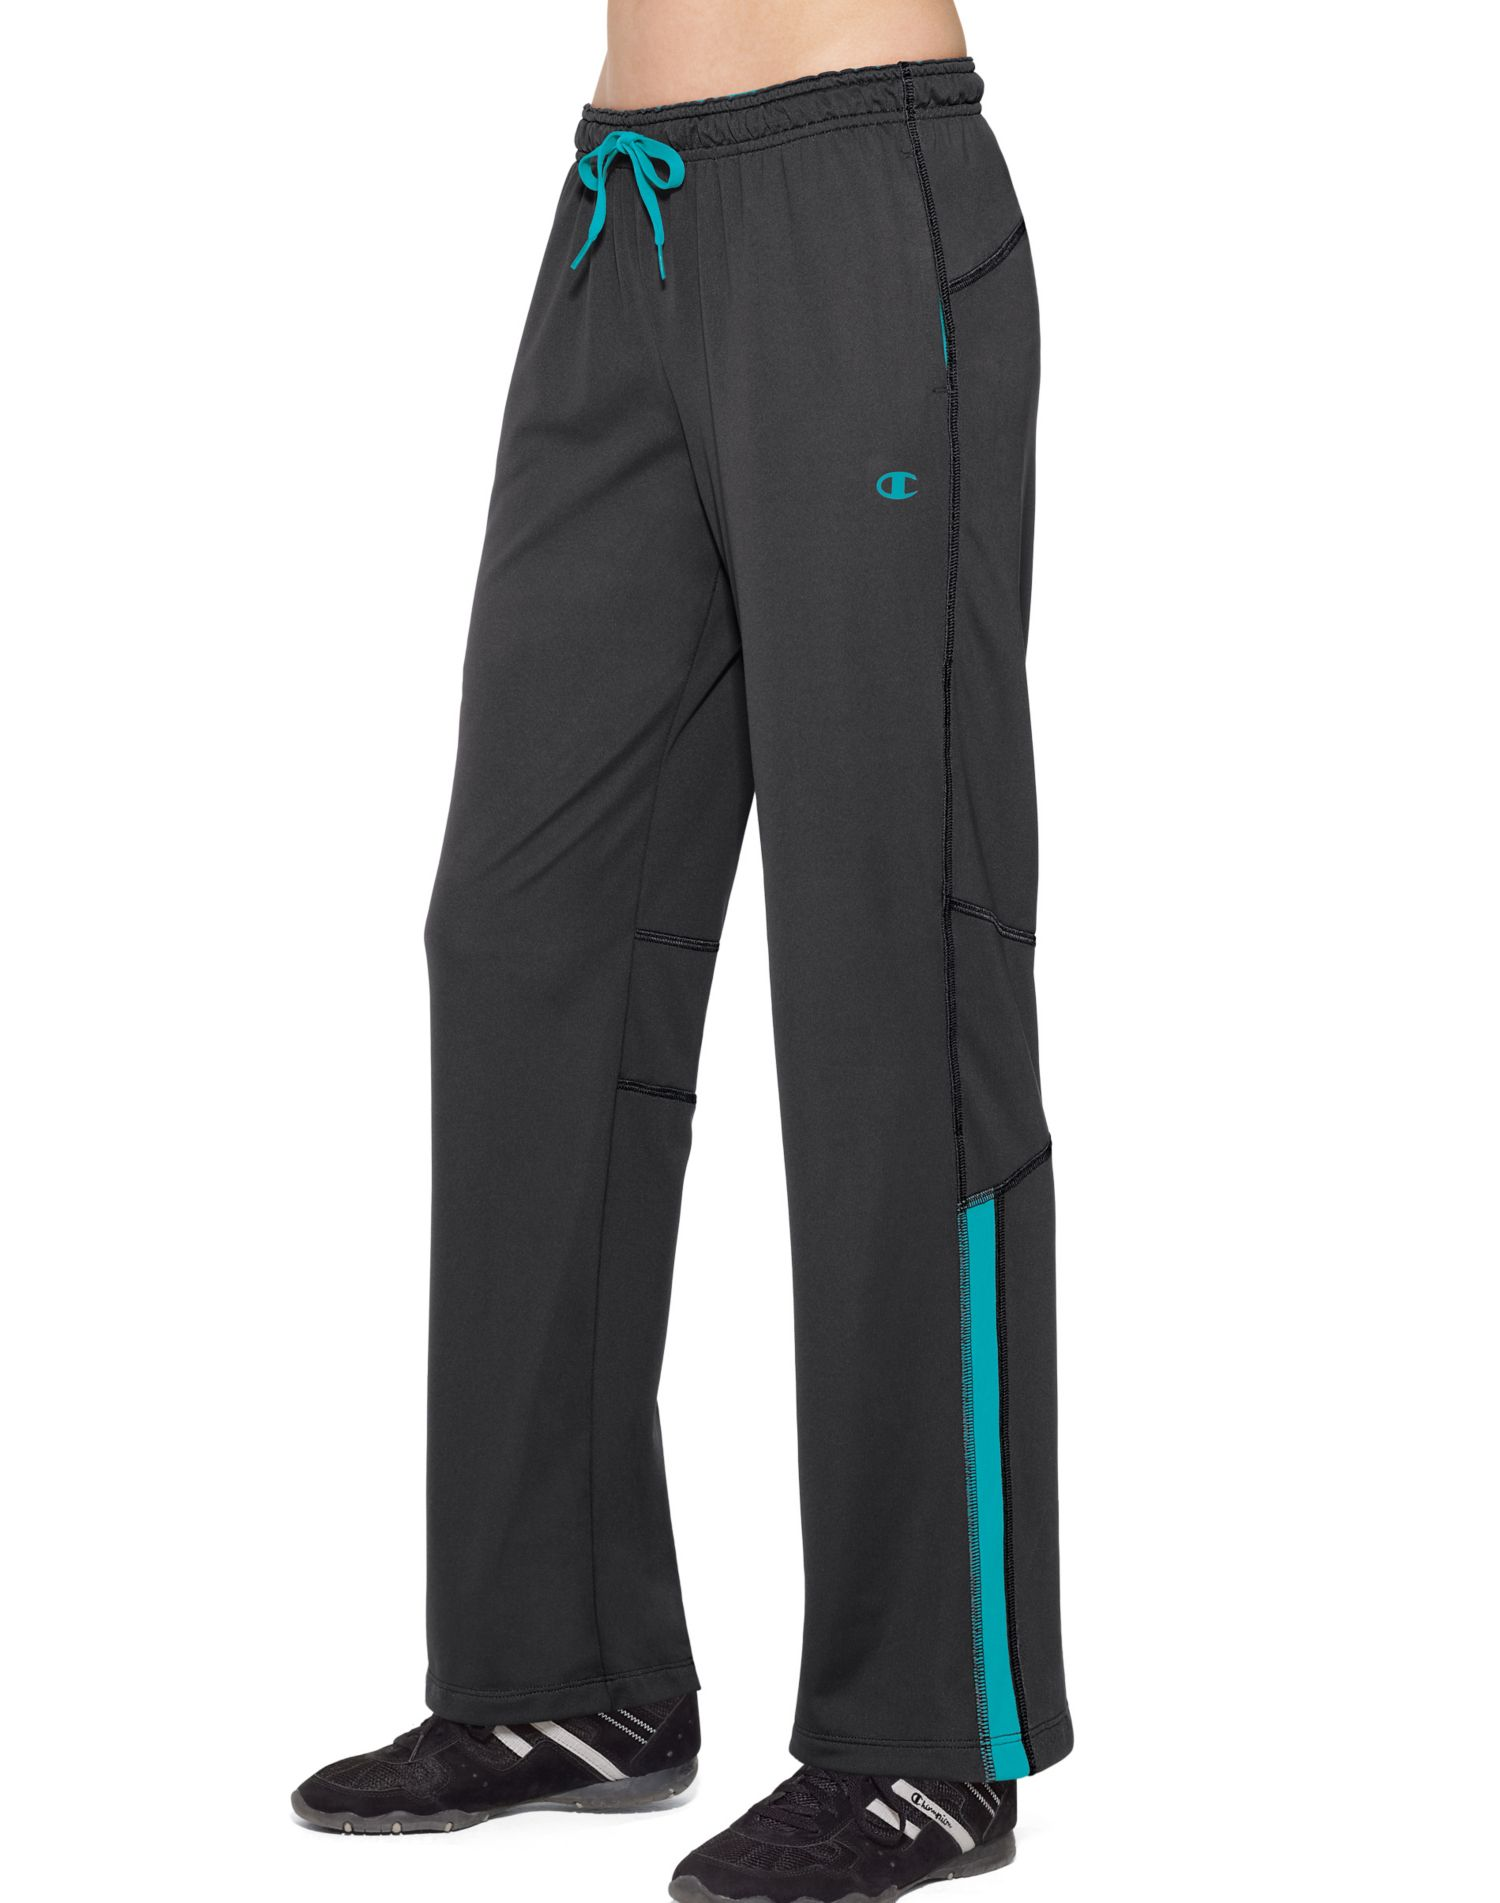 Champion Wms POWERTRAIN Pant